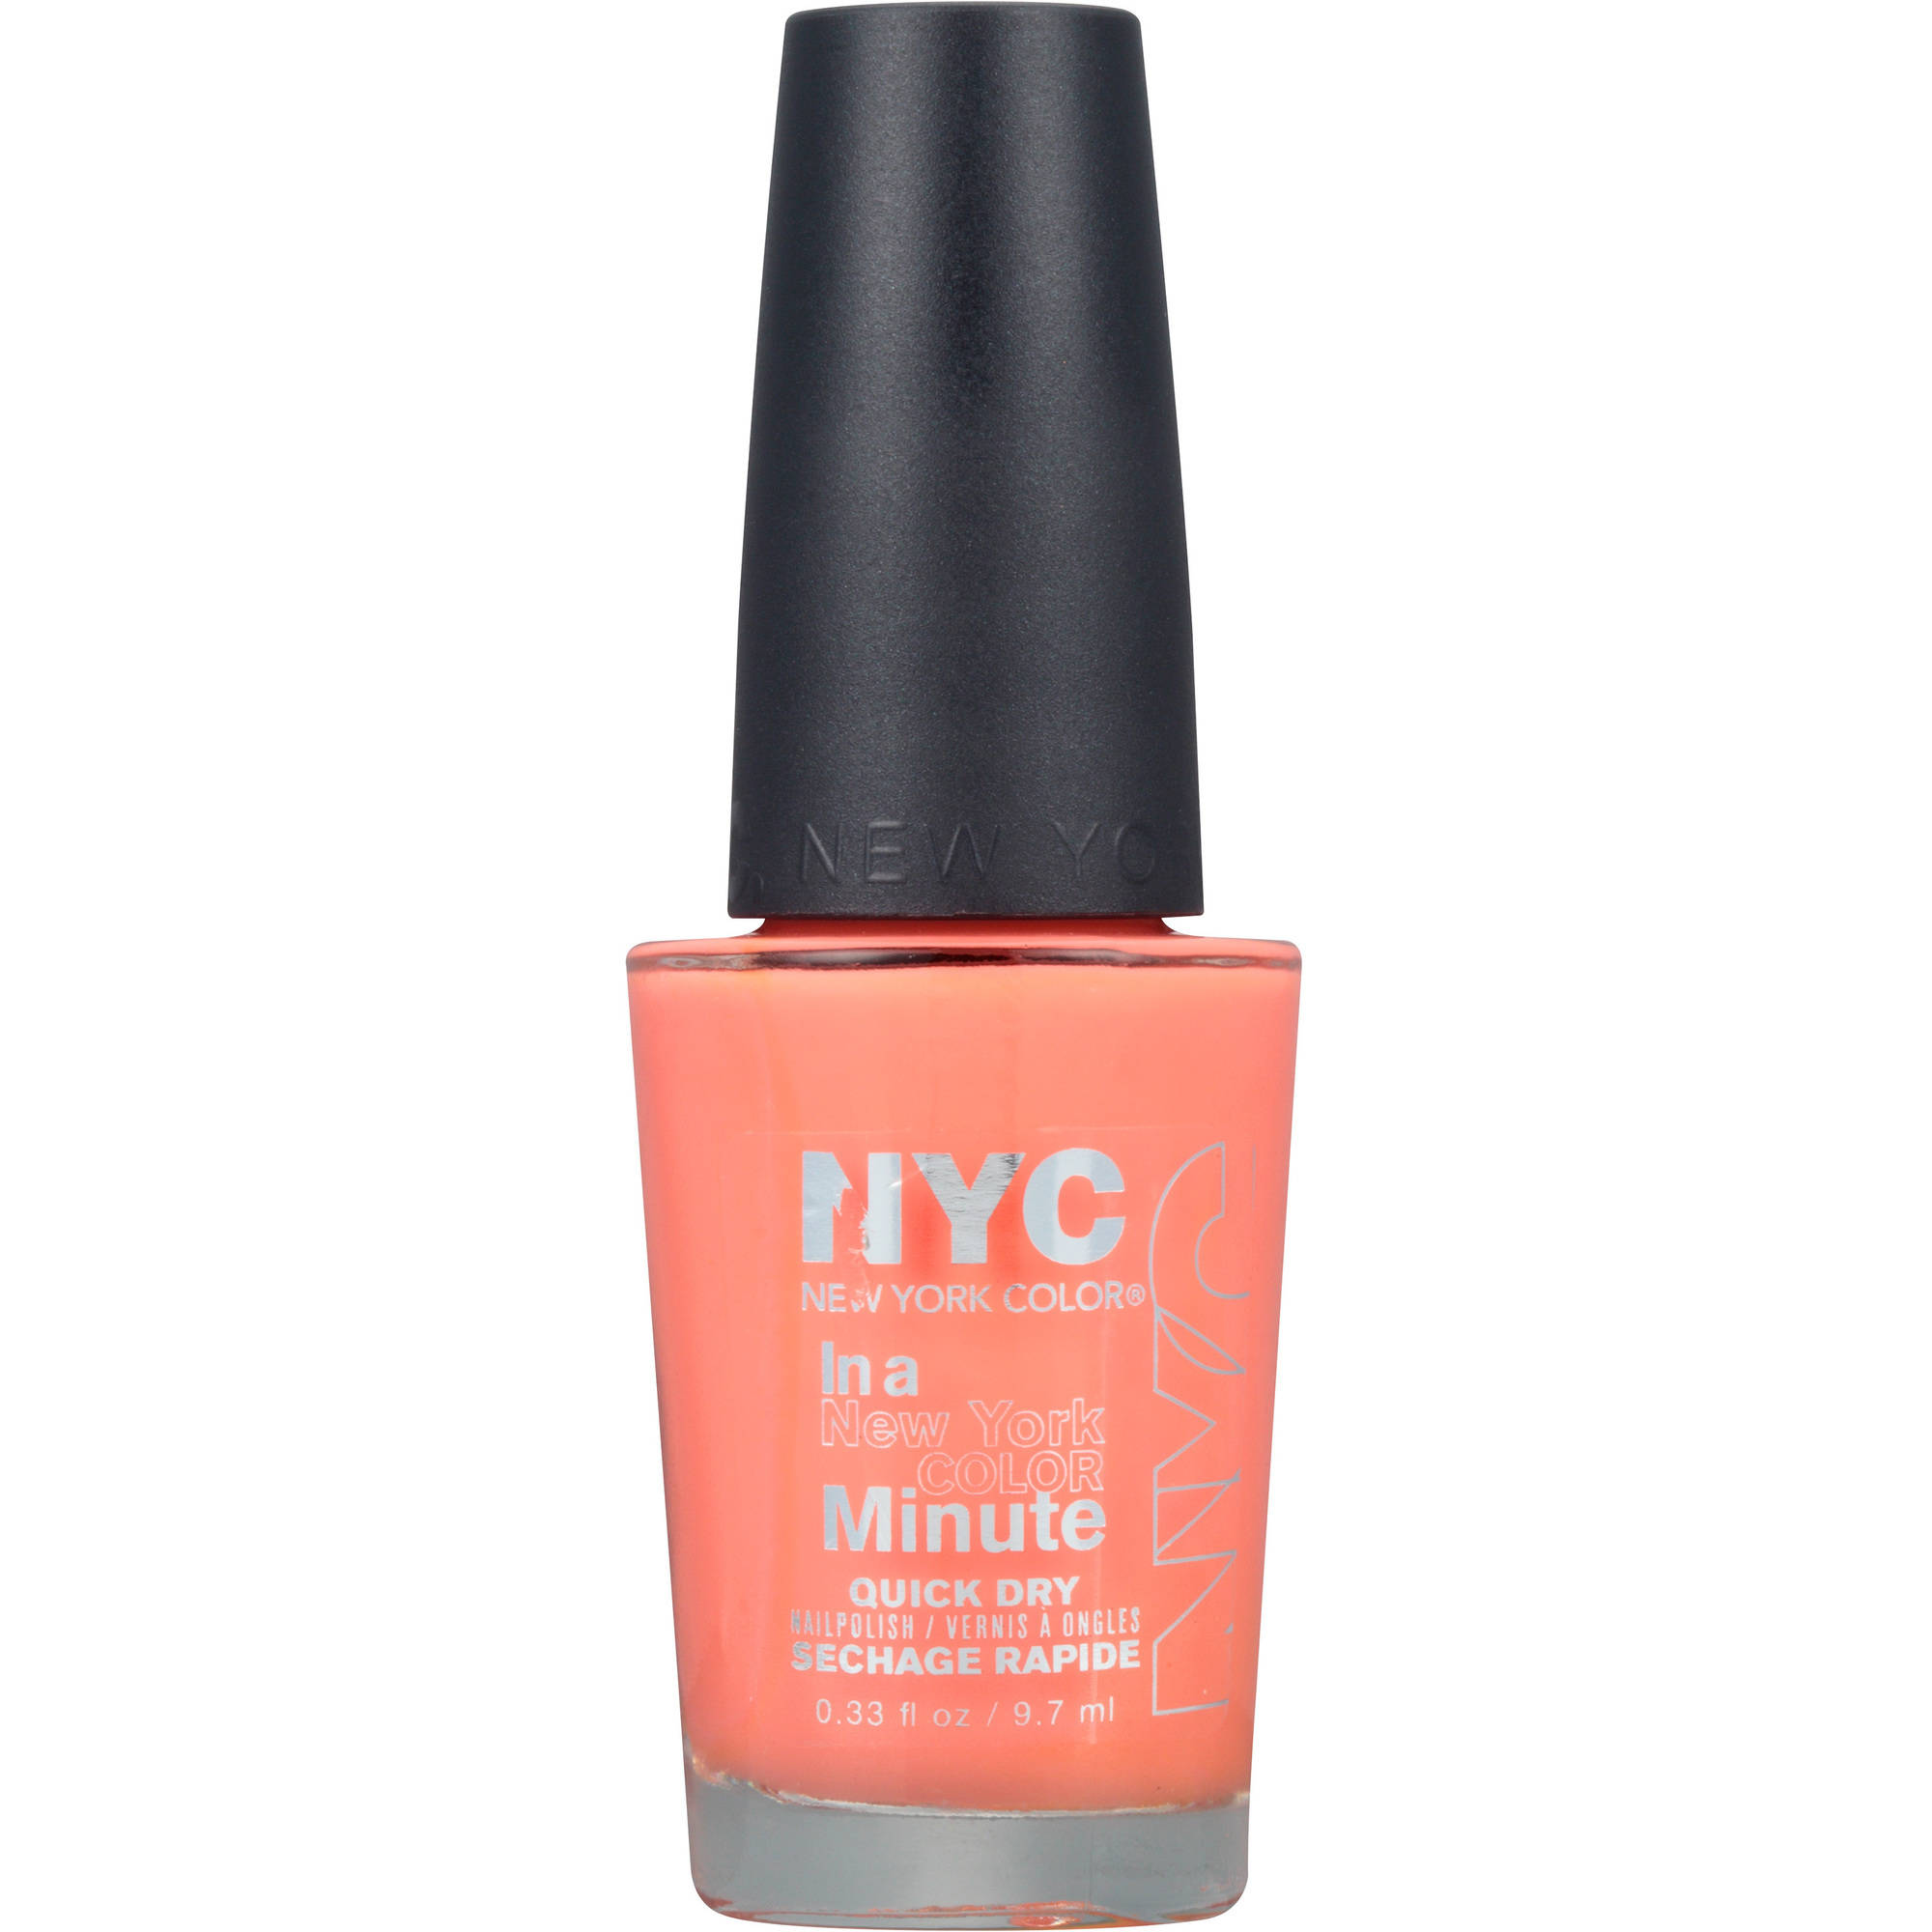 NYC New York Color In a New York Color Minute Nail Polish, 267 ...